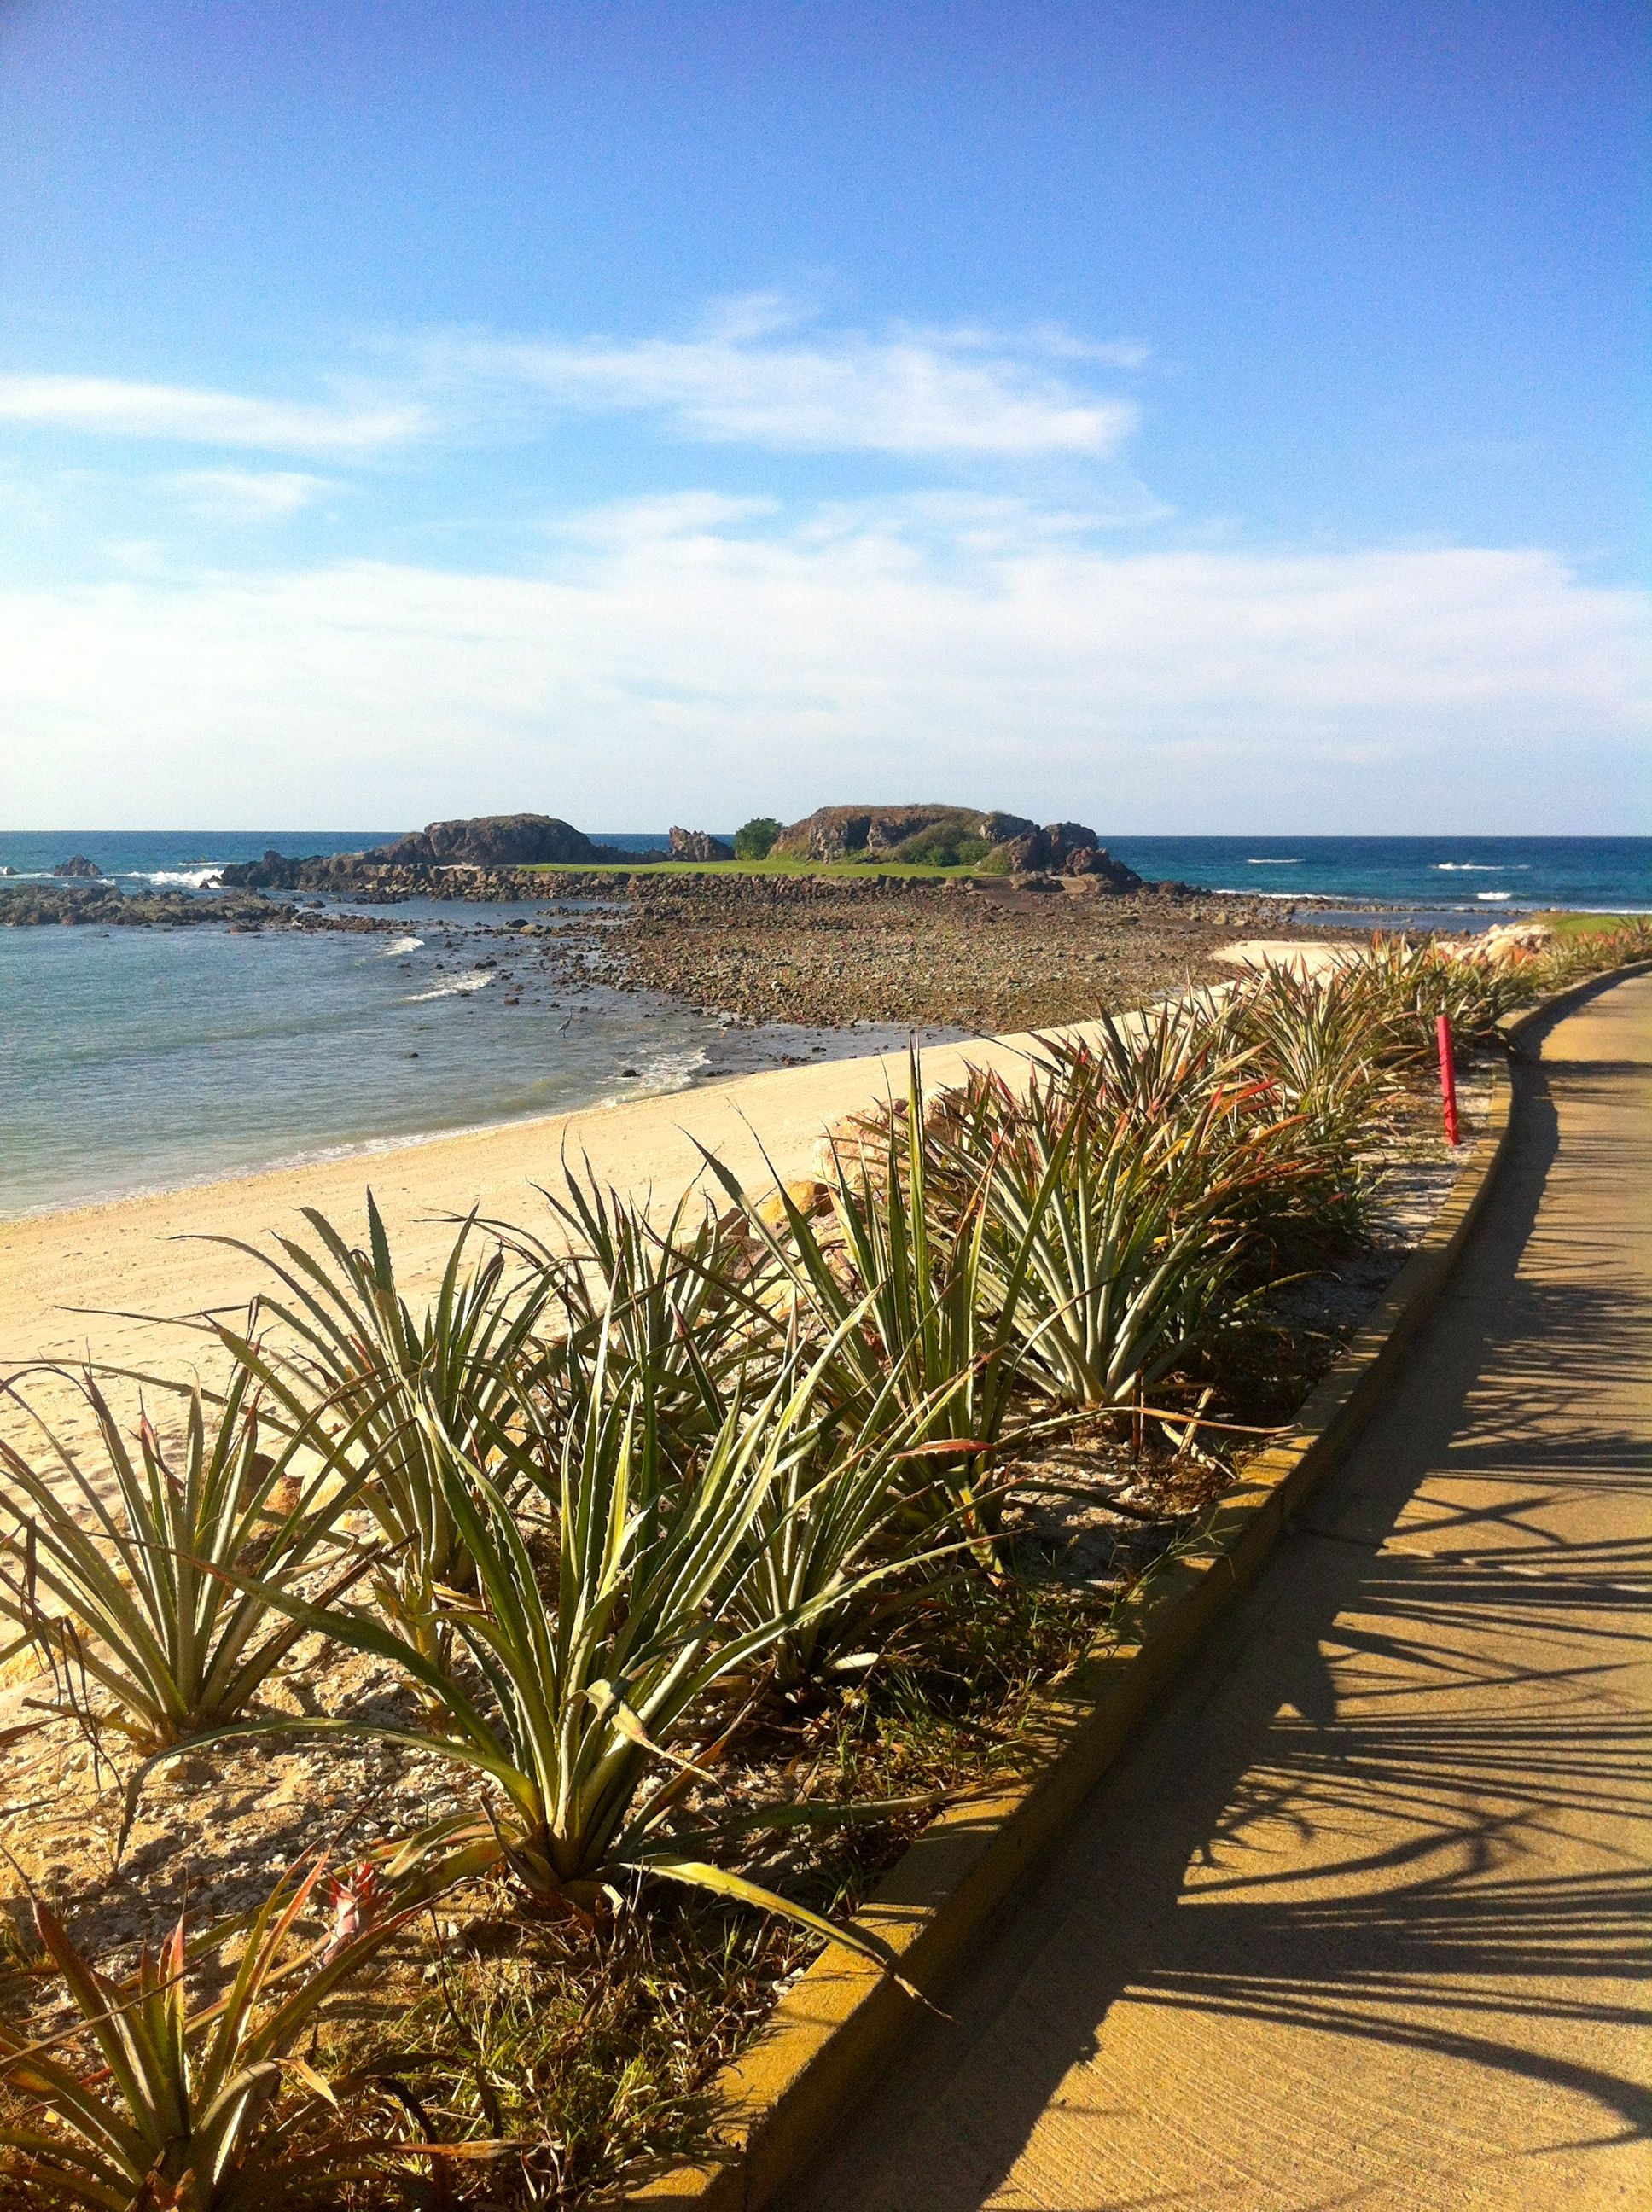 Four Seasons Punta Mita.  Famous Tail of the Whale island golf hole.